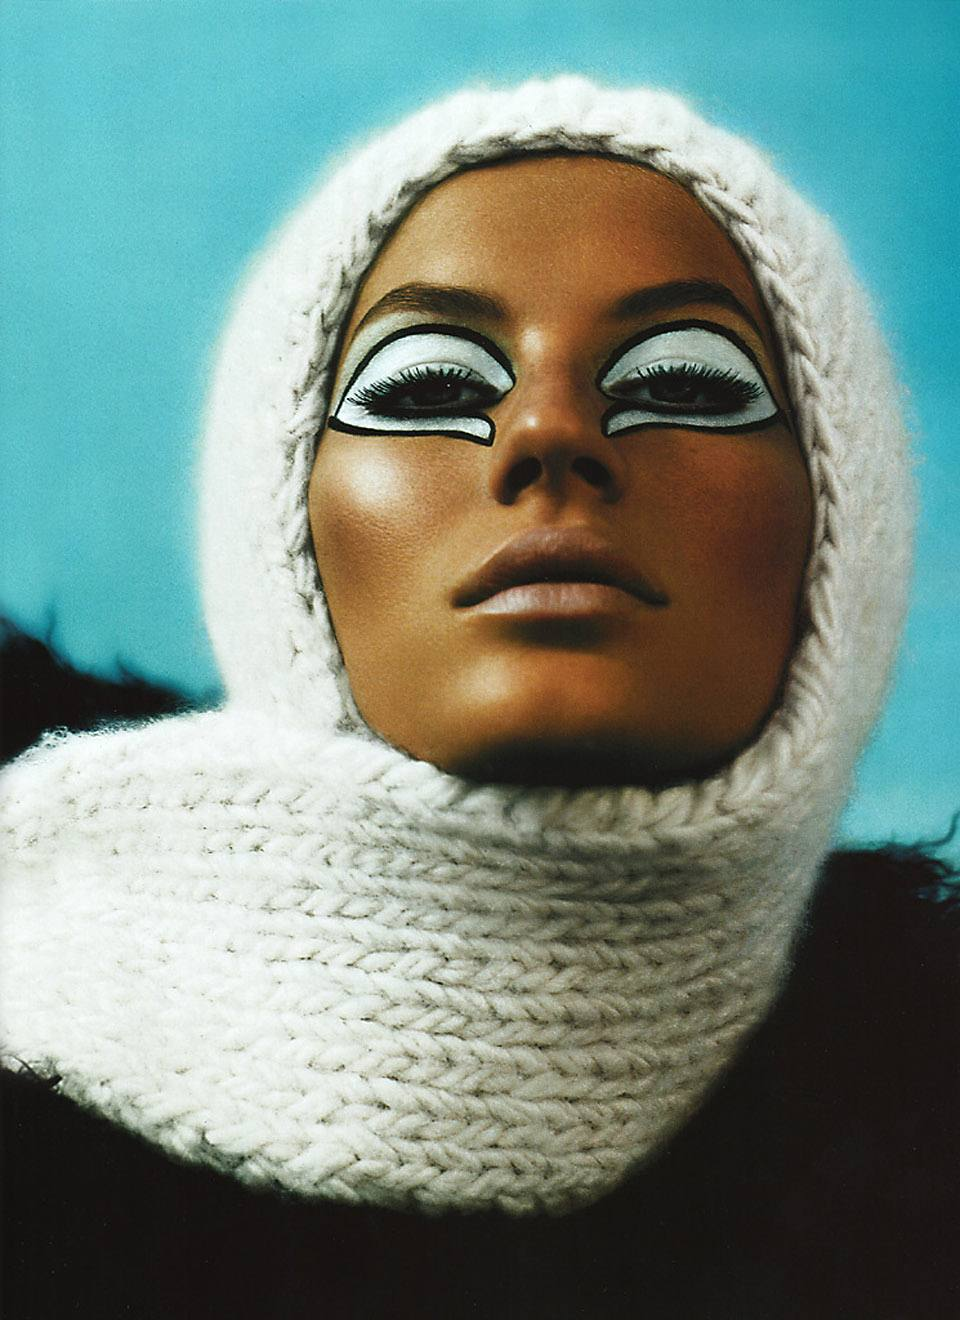 gisele-bc3bcndchen-by-mert-alas-marcus-piggott-for-pop-magazine-fallwinter-2001-7